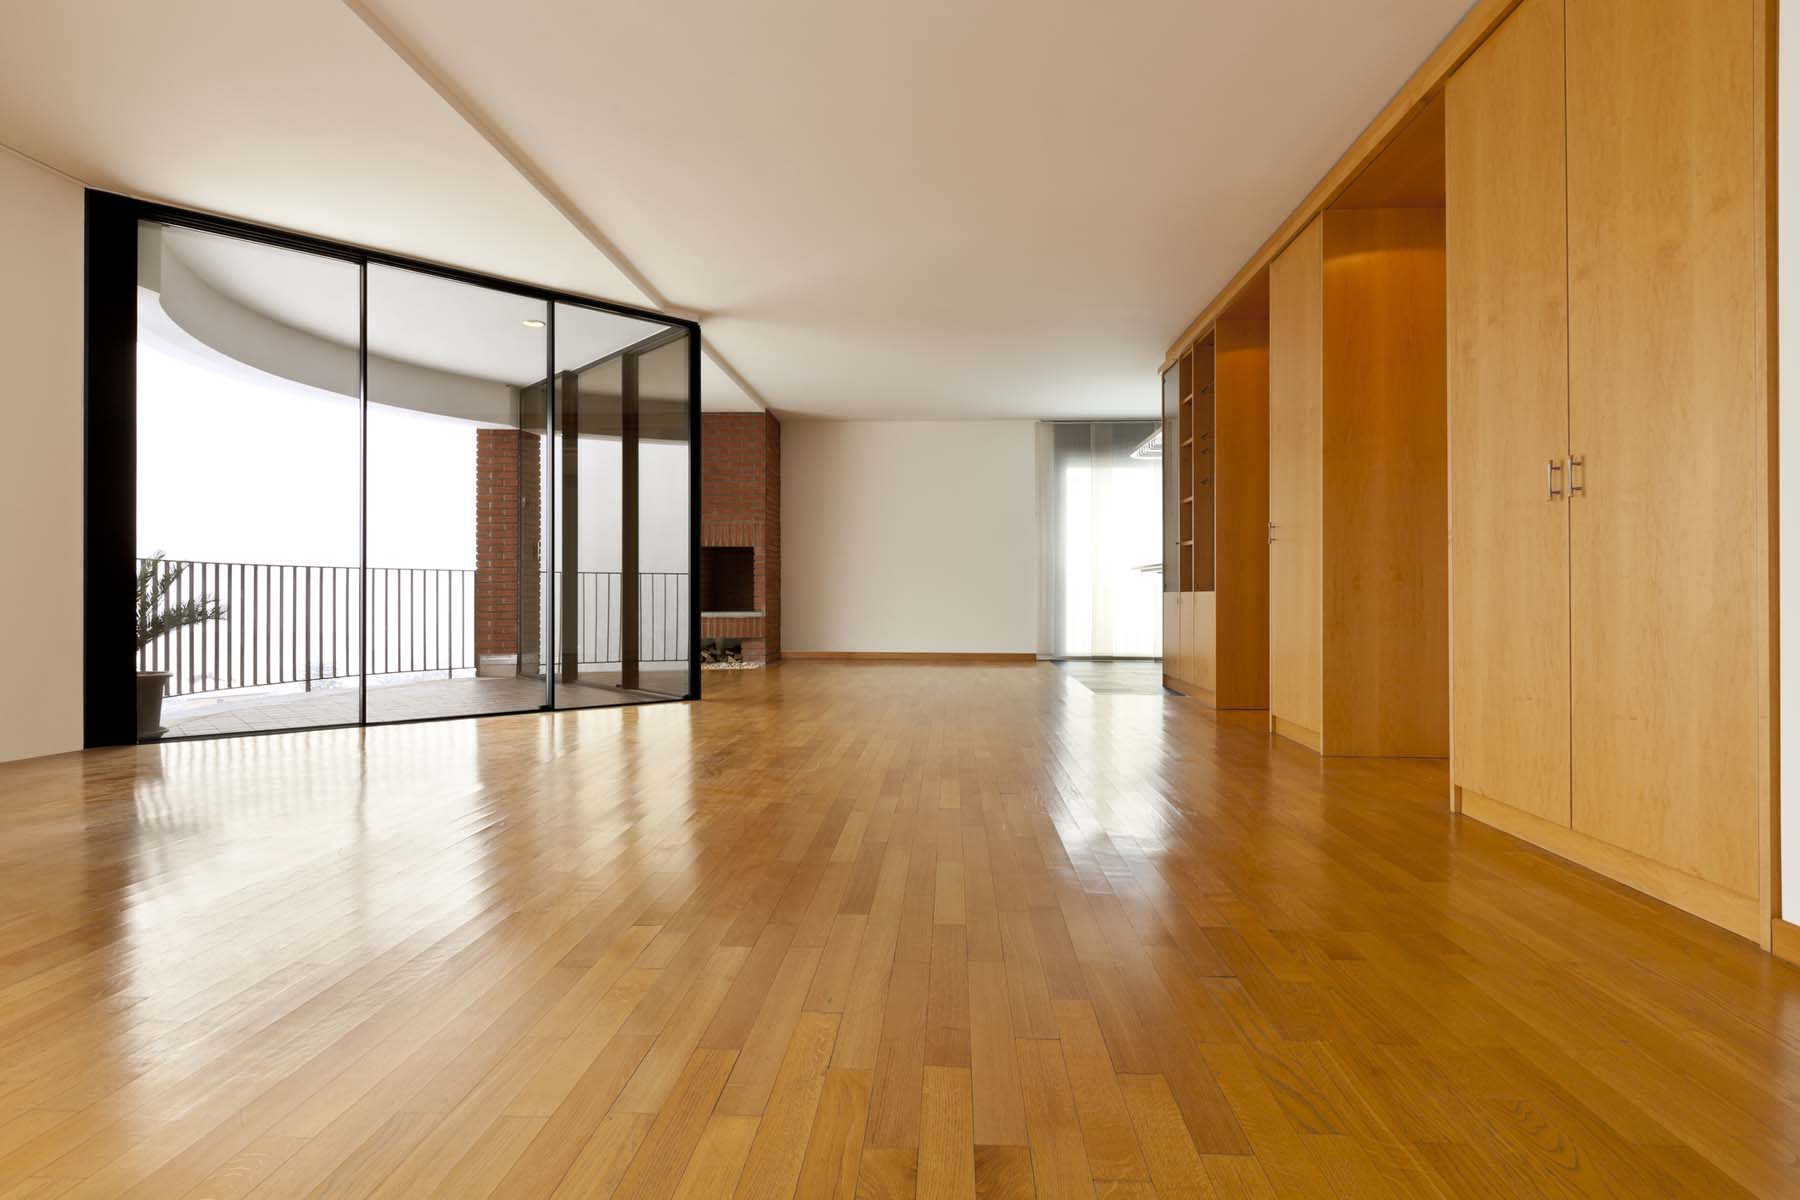 quality pic service wood floor flooring services refinishing before floors and after